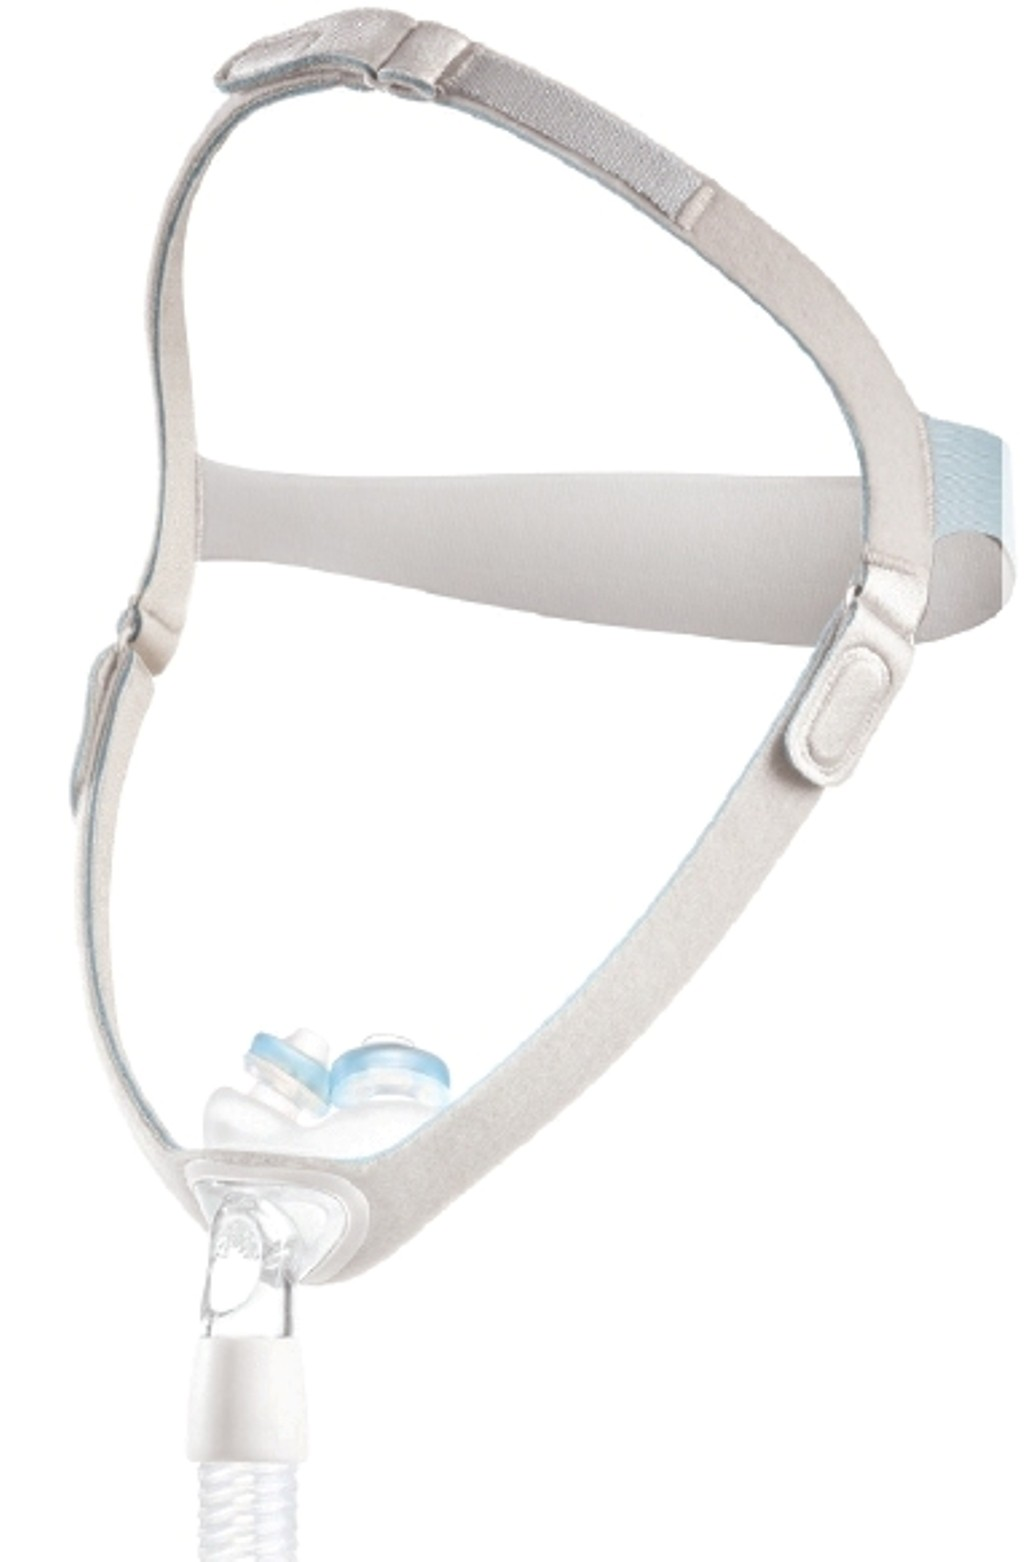 Philips Respironics Nuance And Nuance Pro Gel Nasal